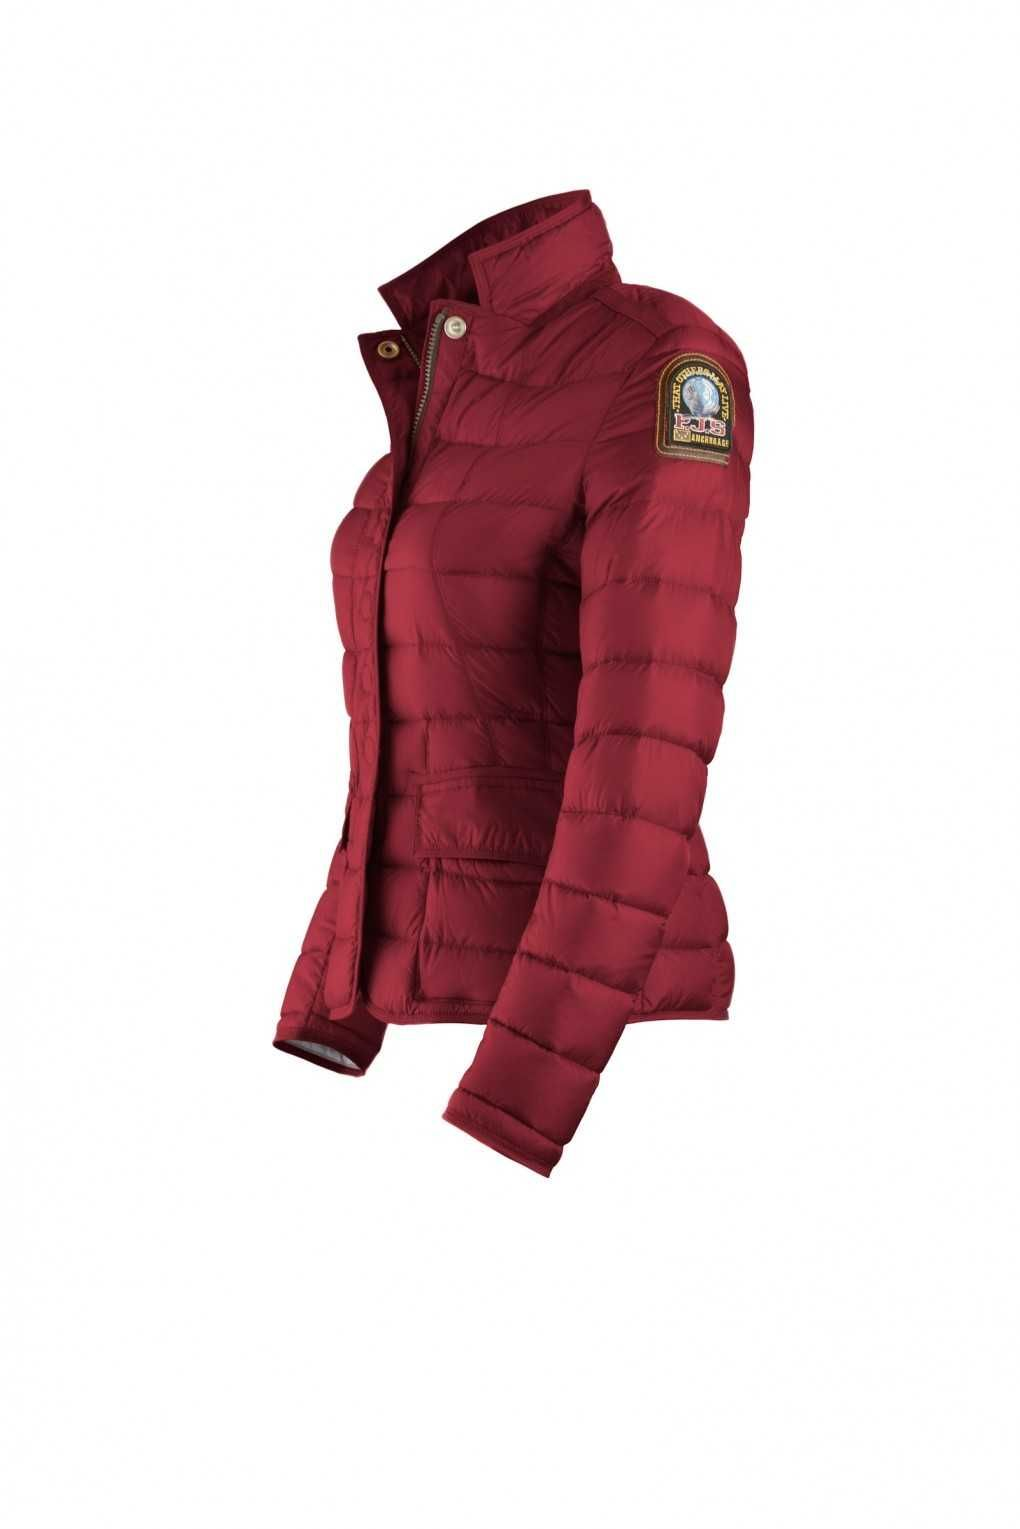 Parajumper Jacket Canada - Shop Discount Parajumper Long Bear Sale, Parajumpers Kodiak Parka And Cheap Parajumpers Coats for Women,Men And Kids,100% High ...